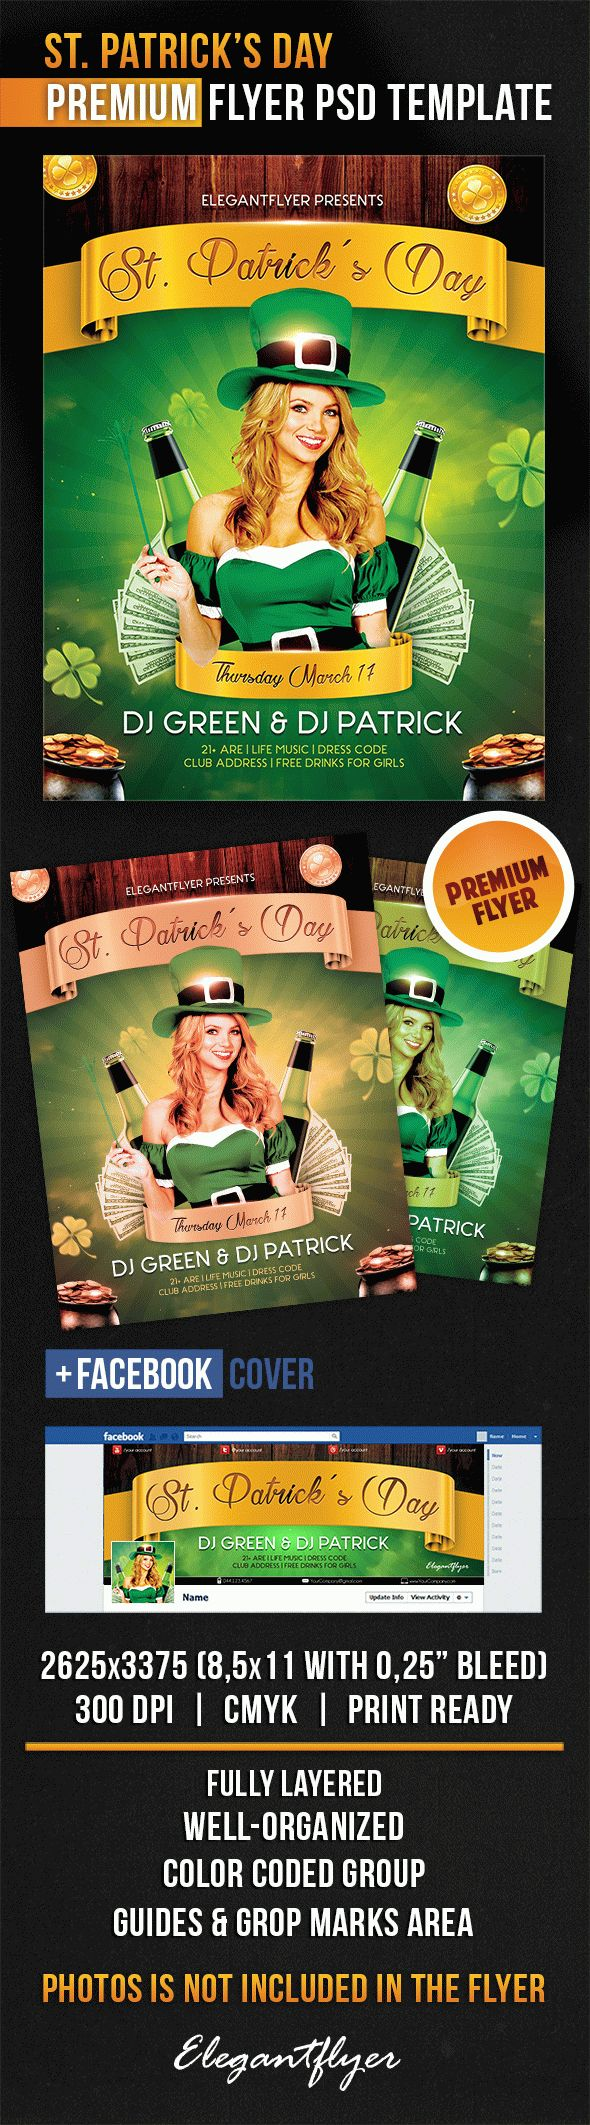 st  patrick u2019s day  u2013 flyer psd template  u2013 by elegantflyer